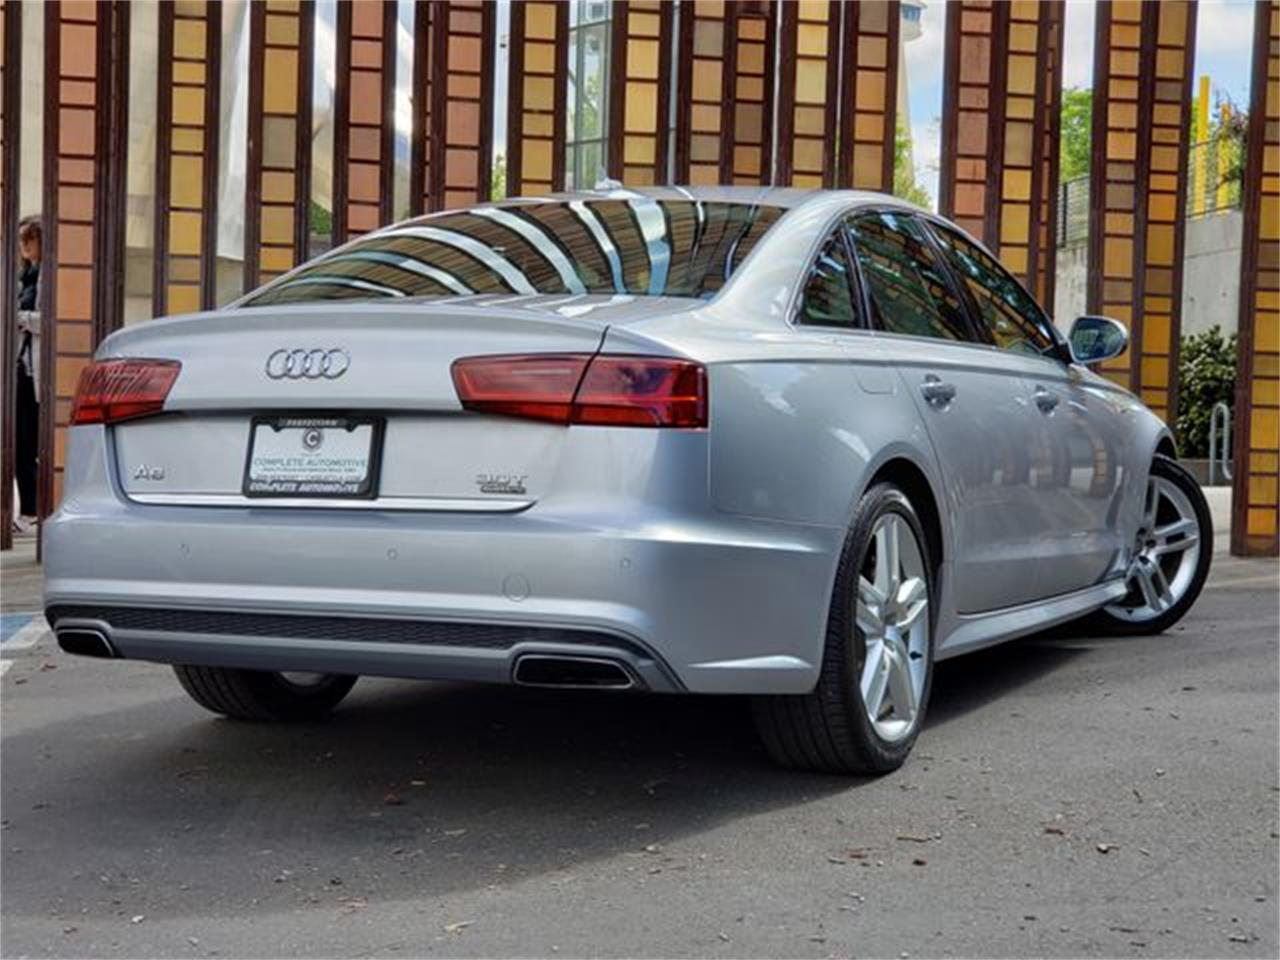 2016 Audi A6 for sale in Seattle, WA – photo 2